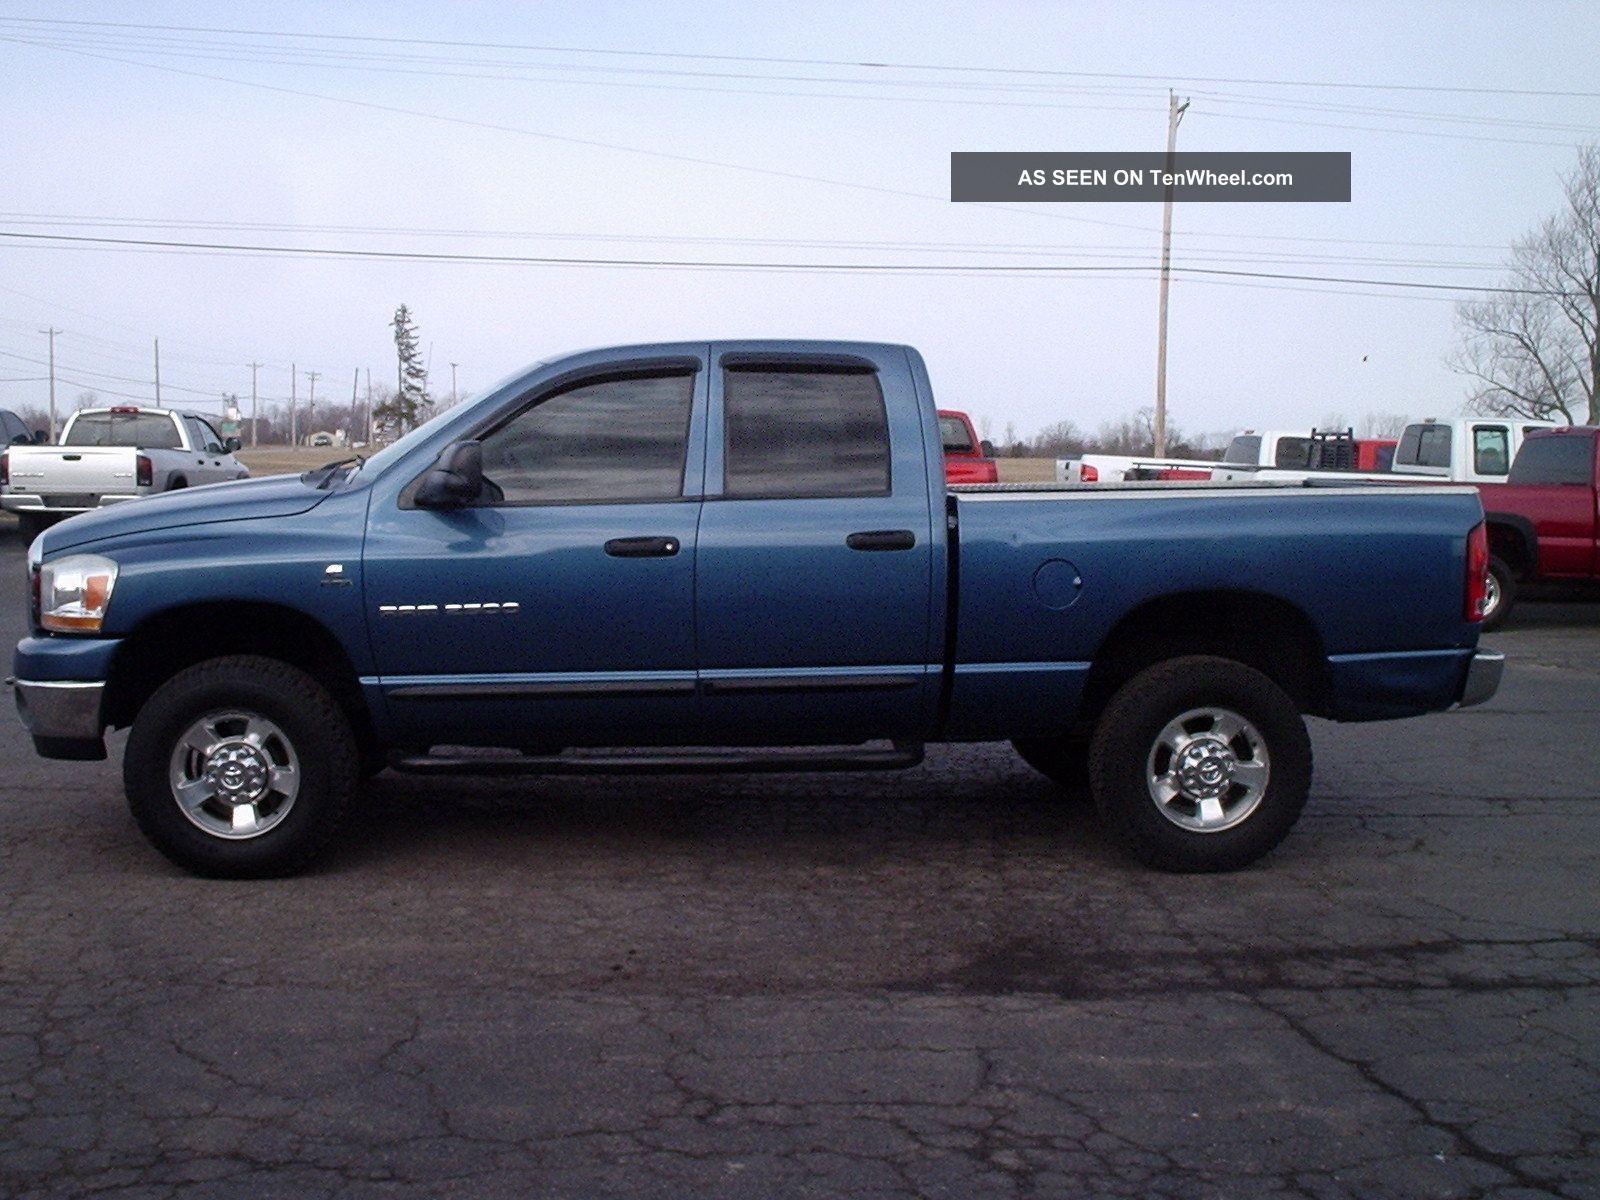 2006 dodge ram 2500 slt crew cab pickup 4 door 5 9l diesel 4x4. Black Bedroom Furniture Sets. Home Design Ideas